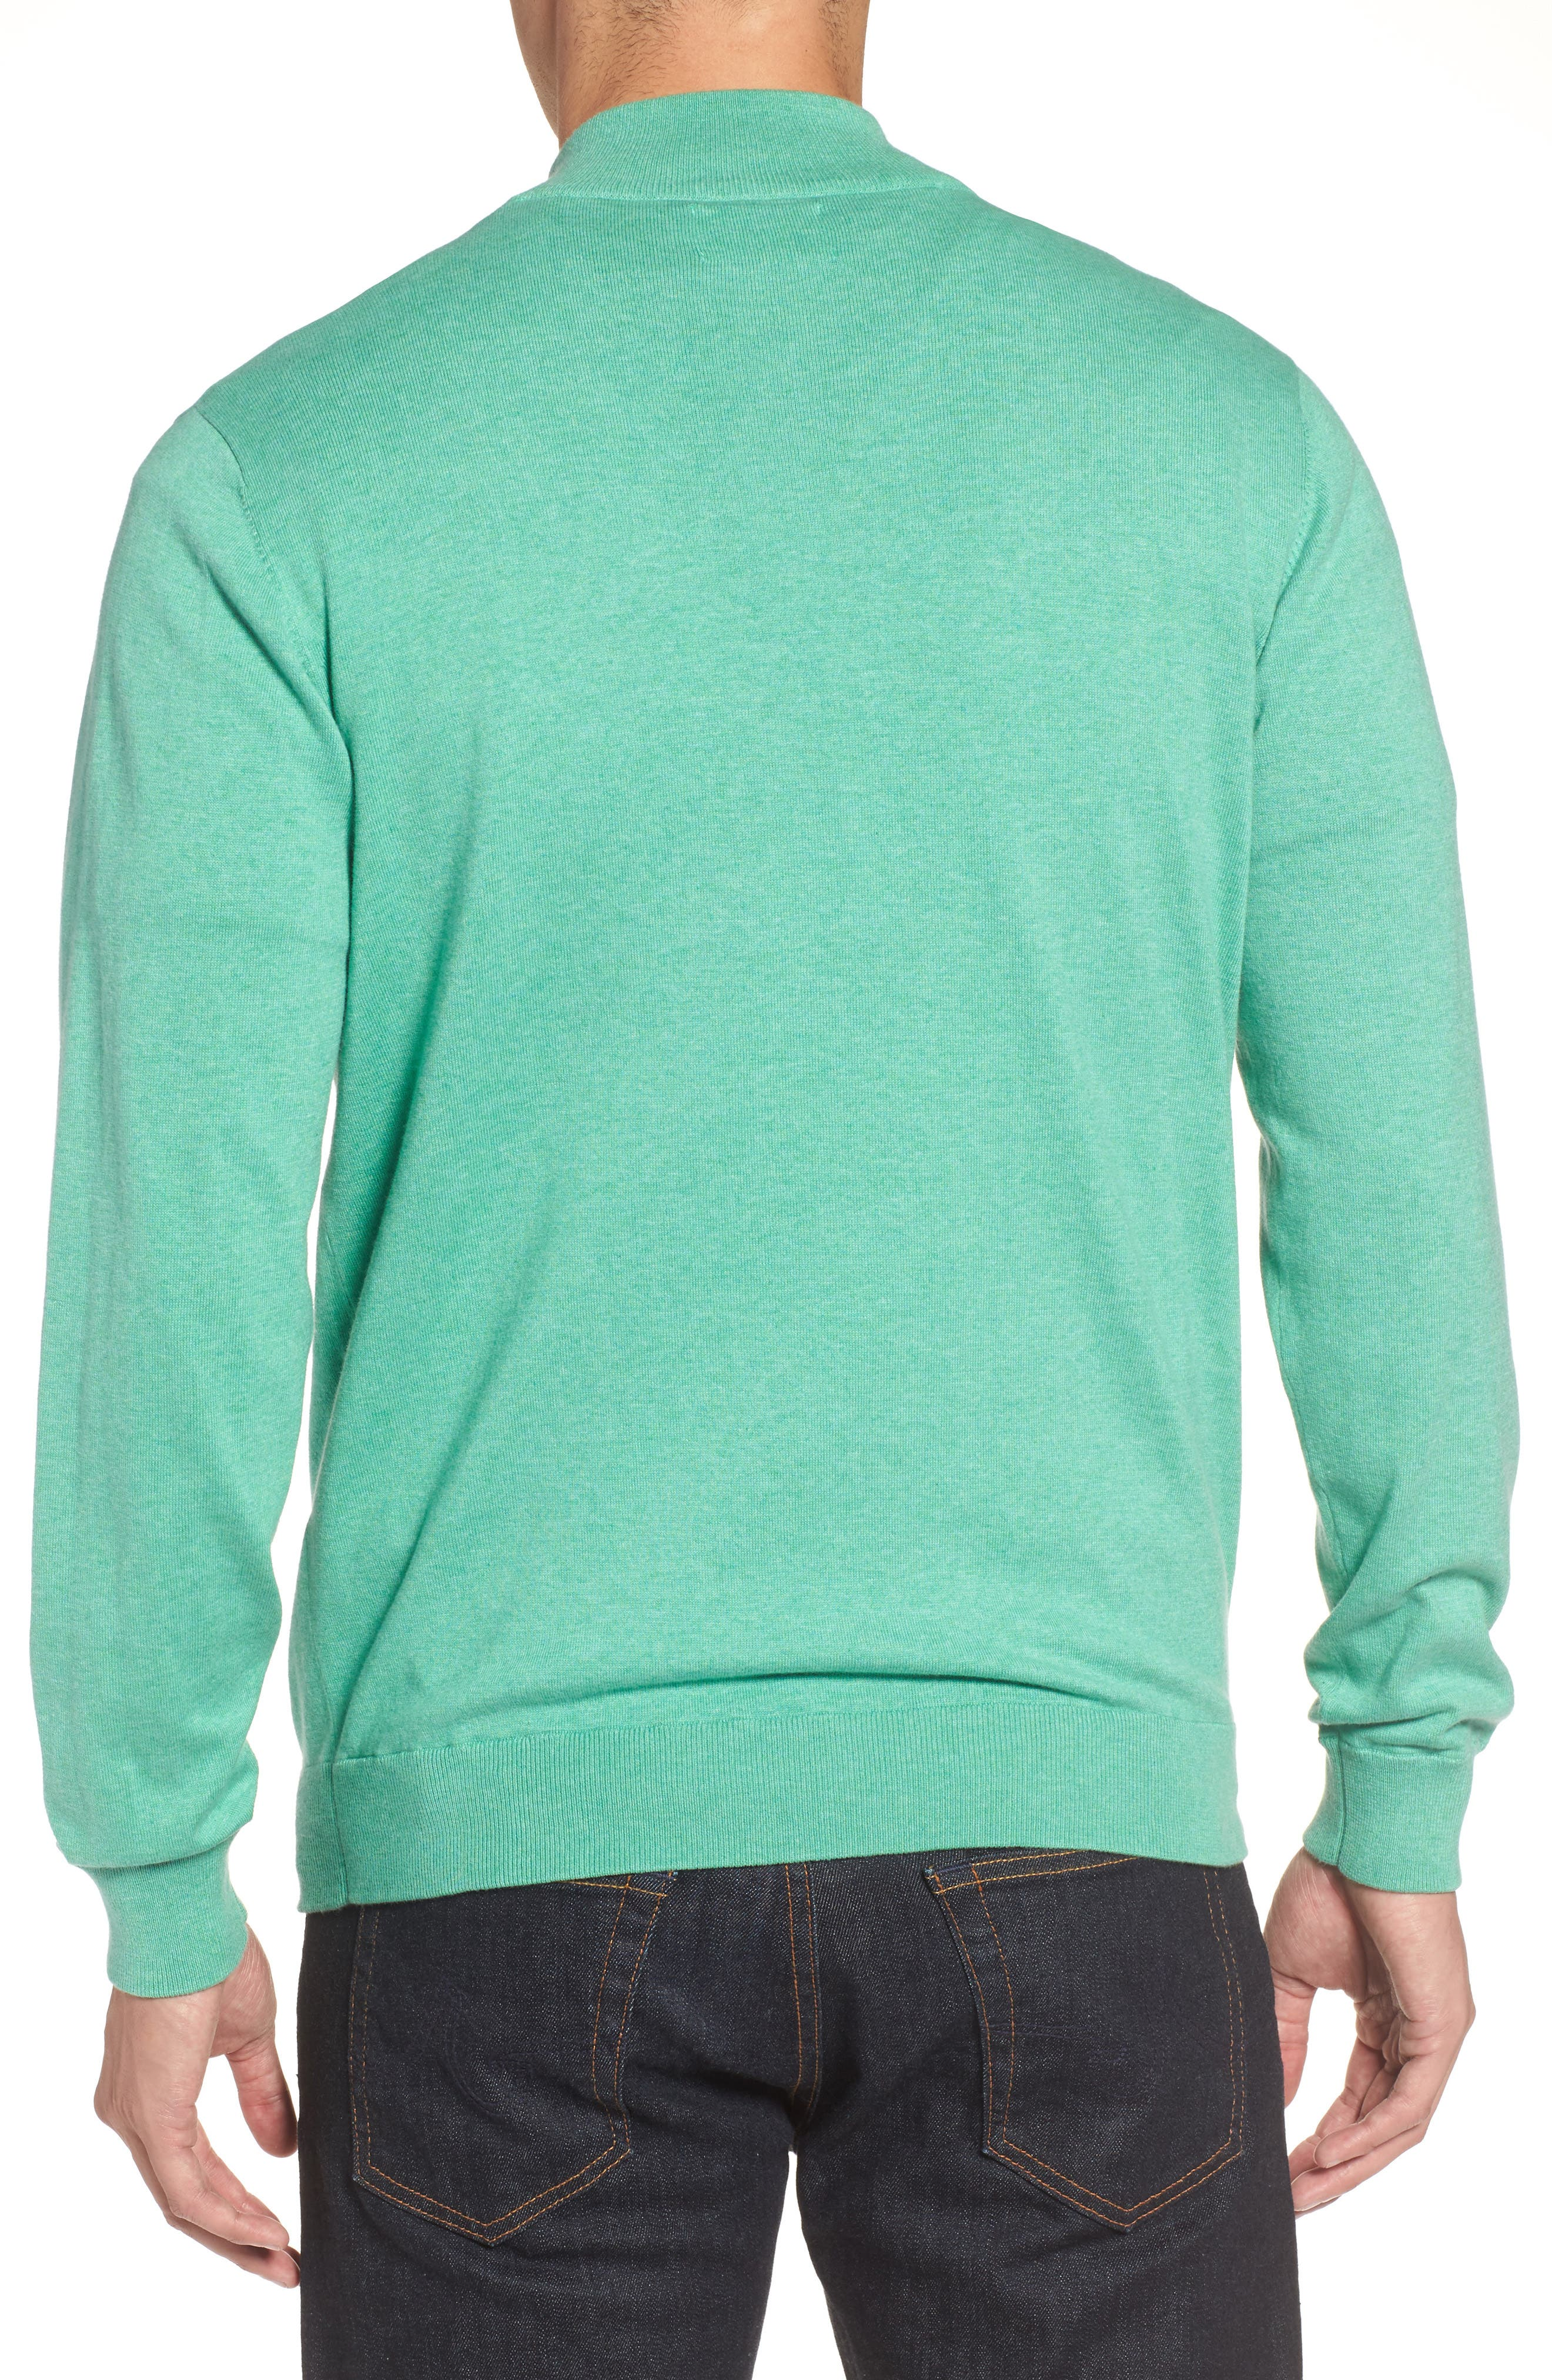 Alternate Image 2  - Southern Tide Marina Cay Quarter Zip Pullover